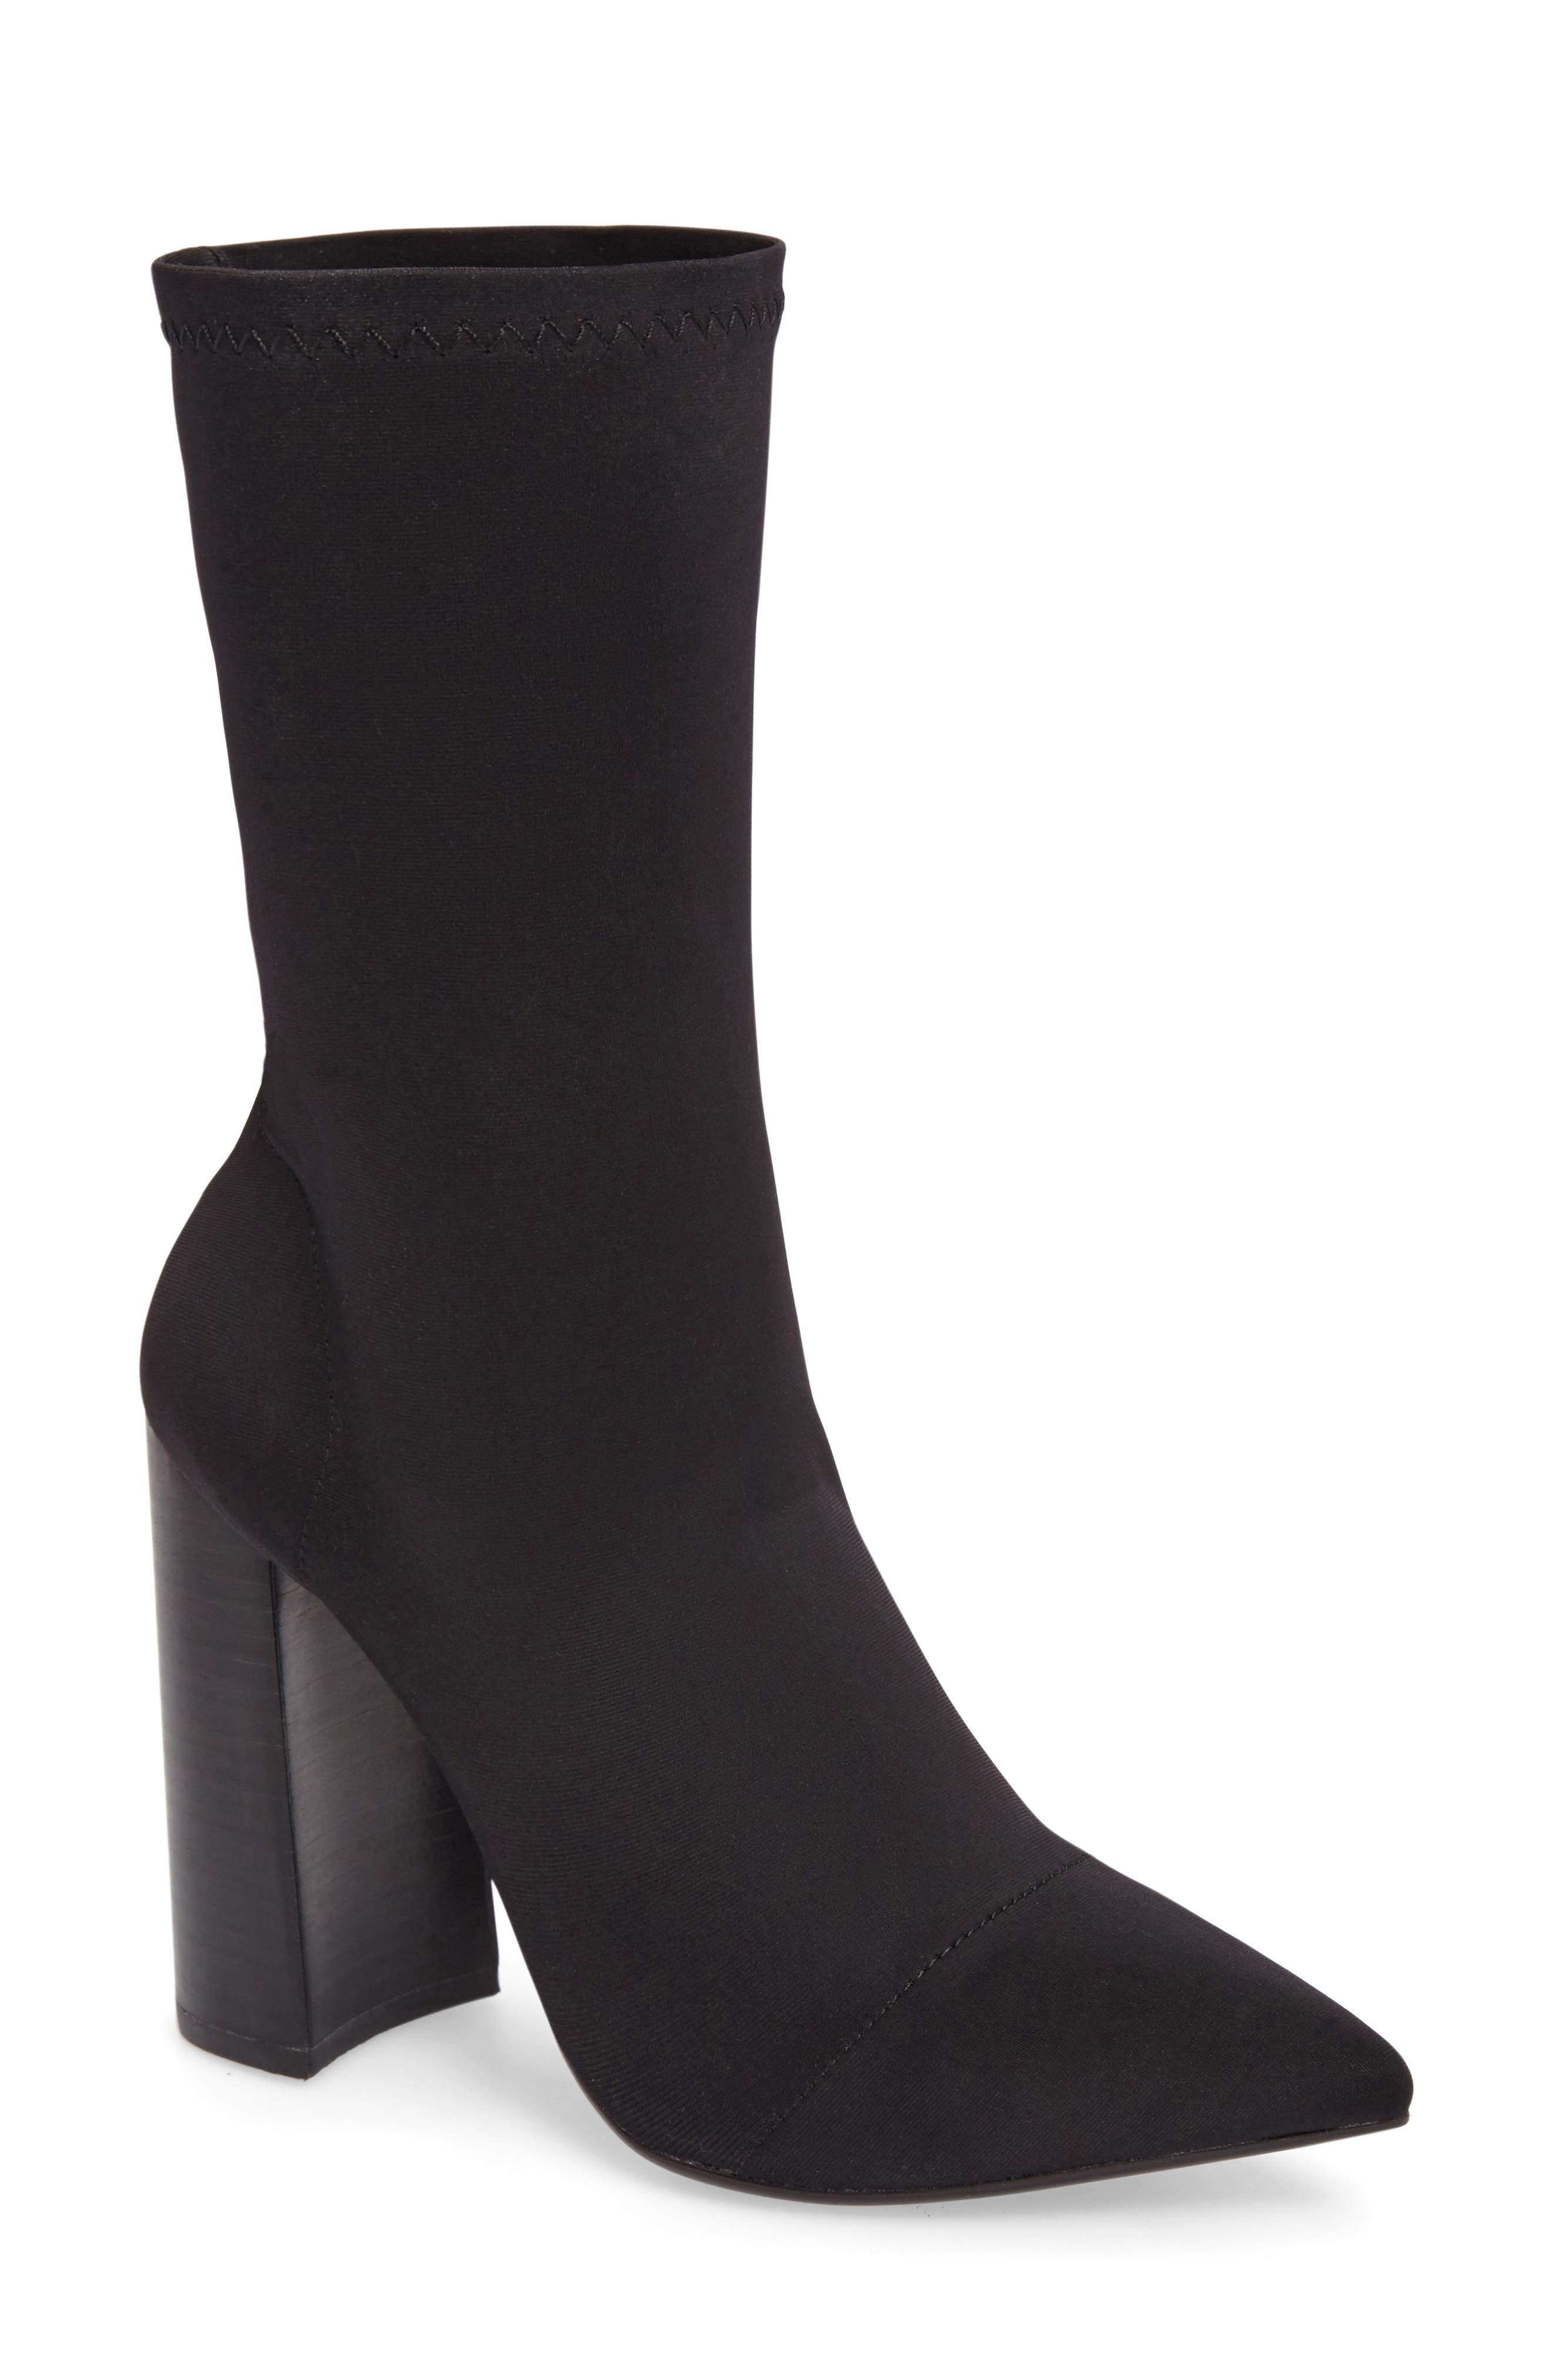 TONY BIANCO Diddy Velvet Bootie in Black Lycra